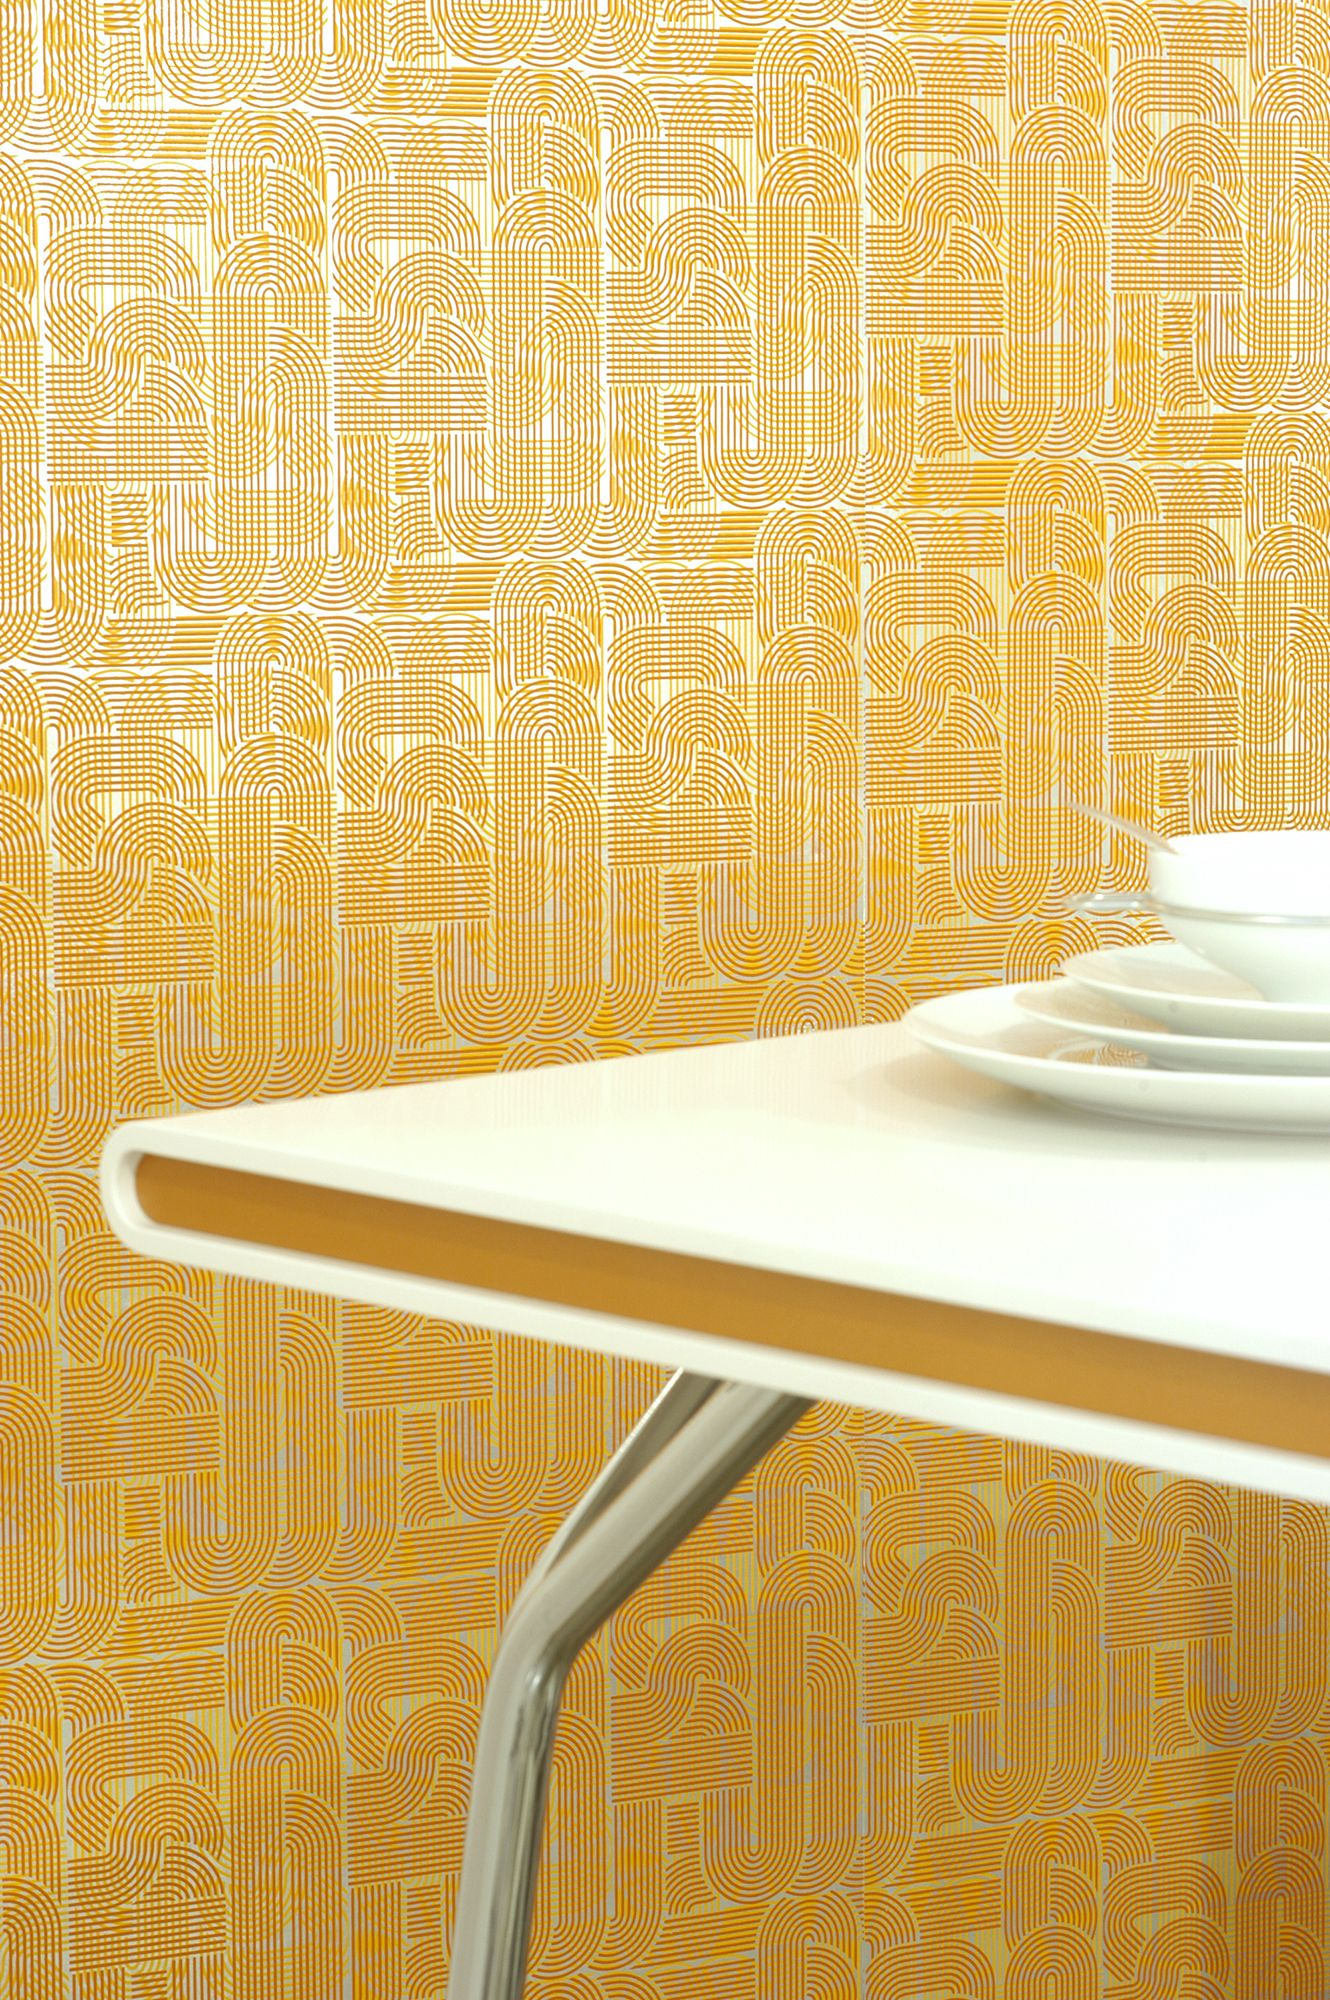 21 Mid-Century Modern Wallpaper Ideas